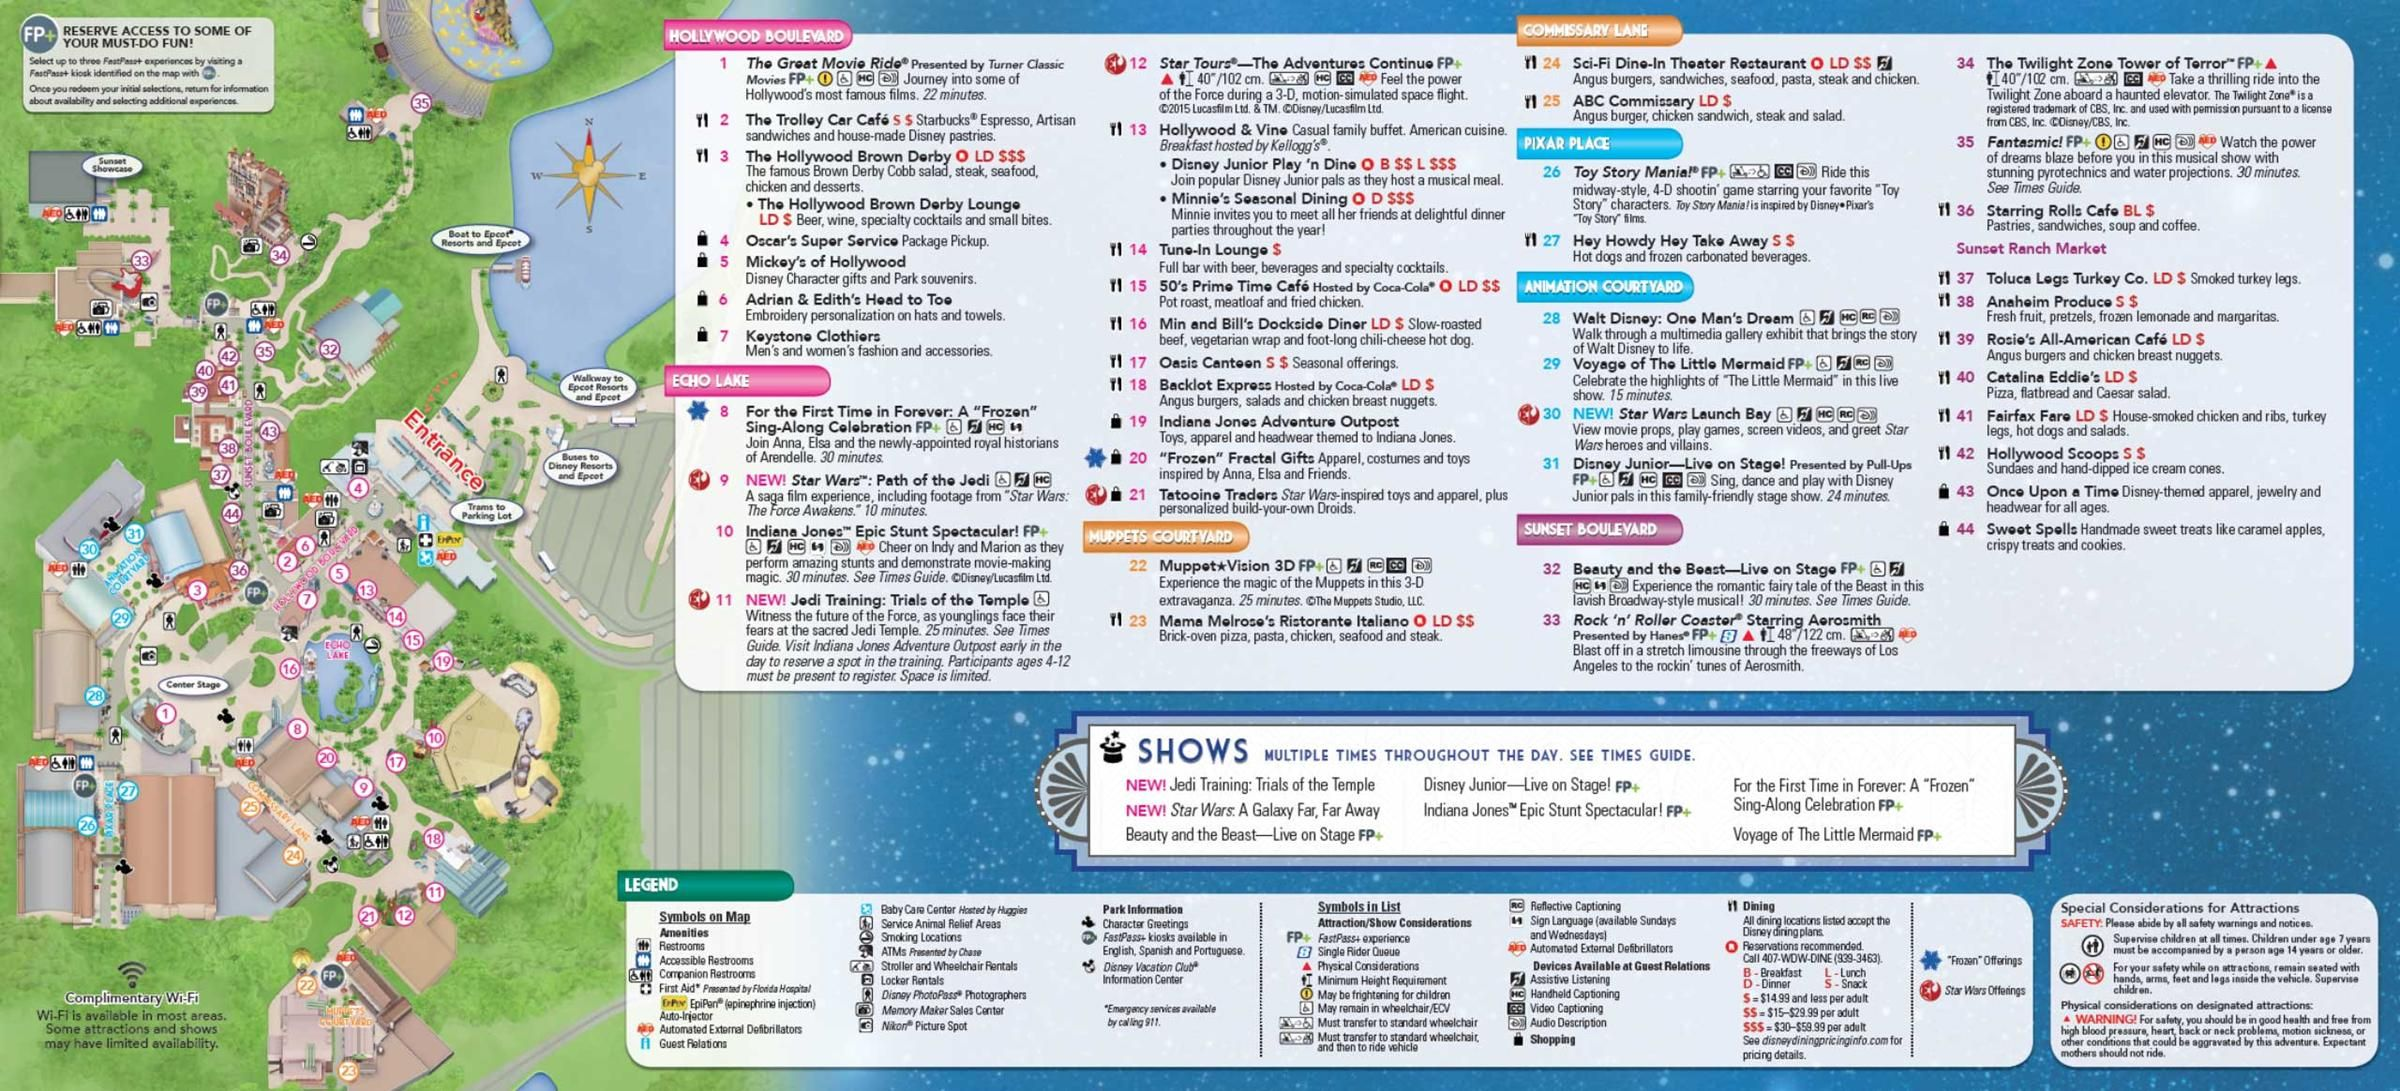 Disney's Hollywood Studios Guide Map May 2016 - Back